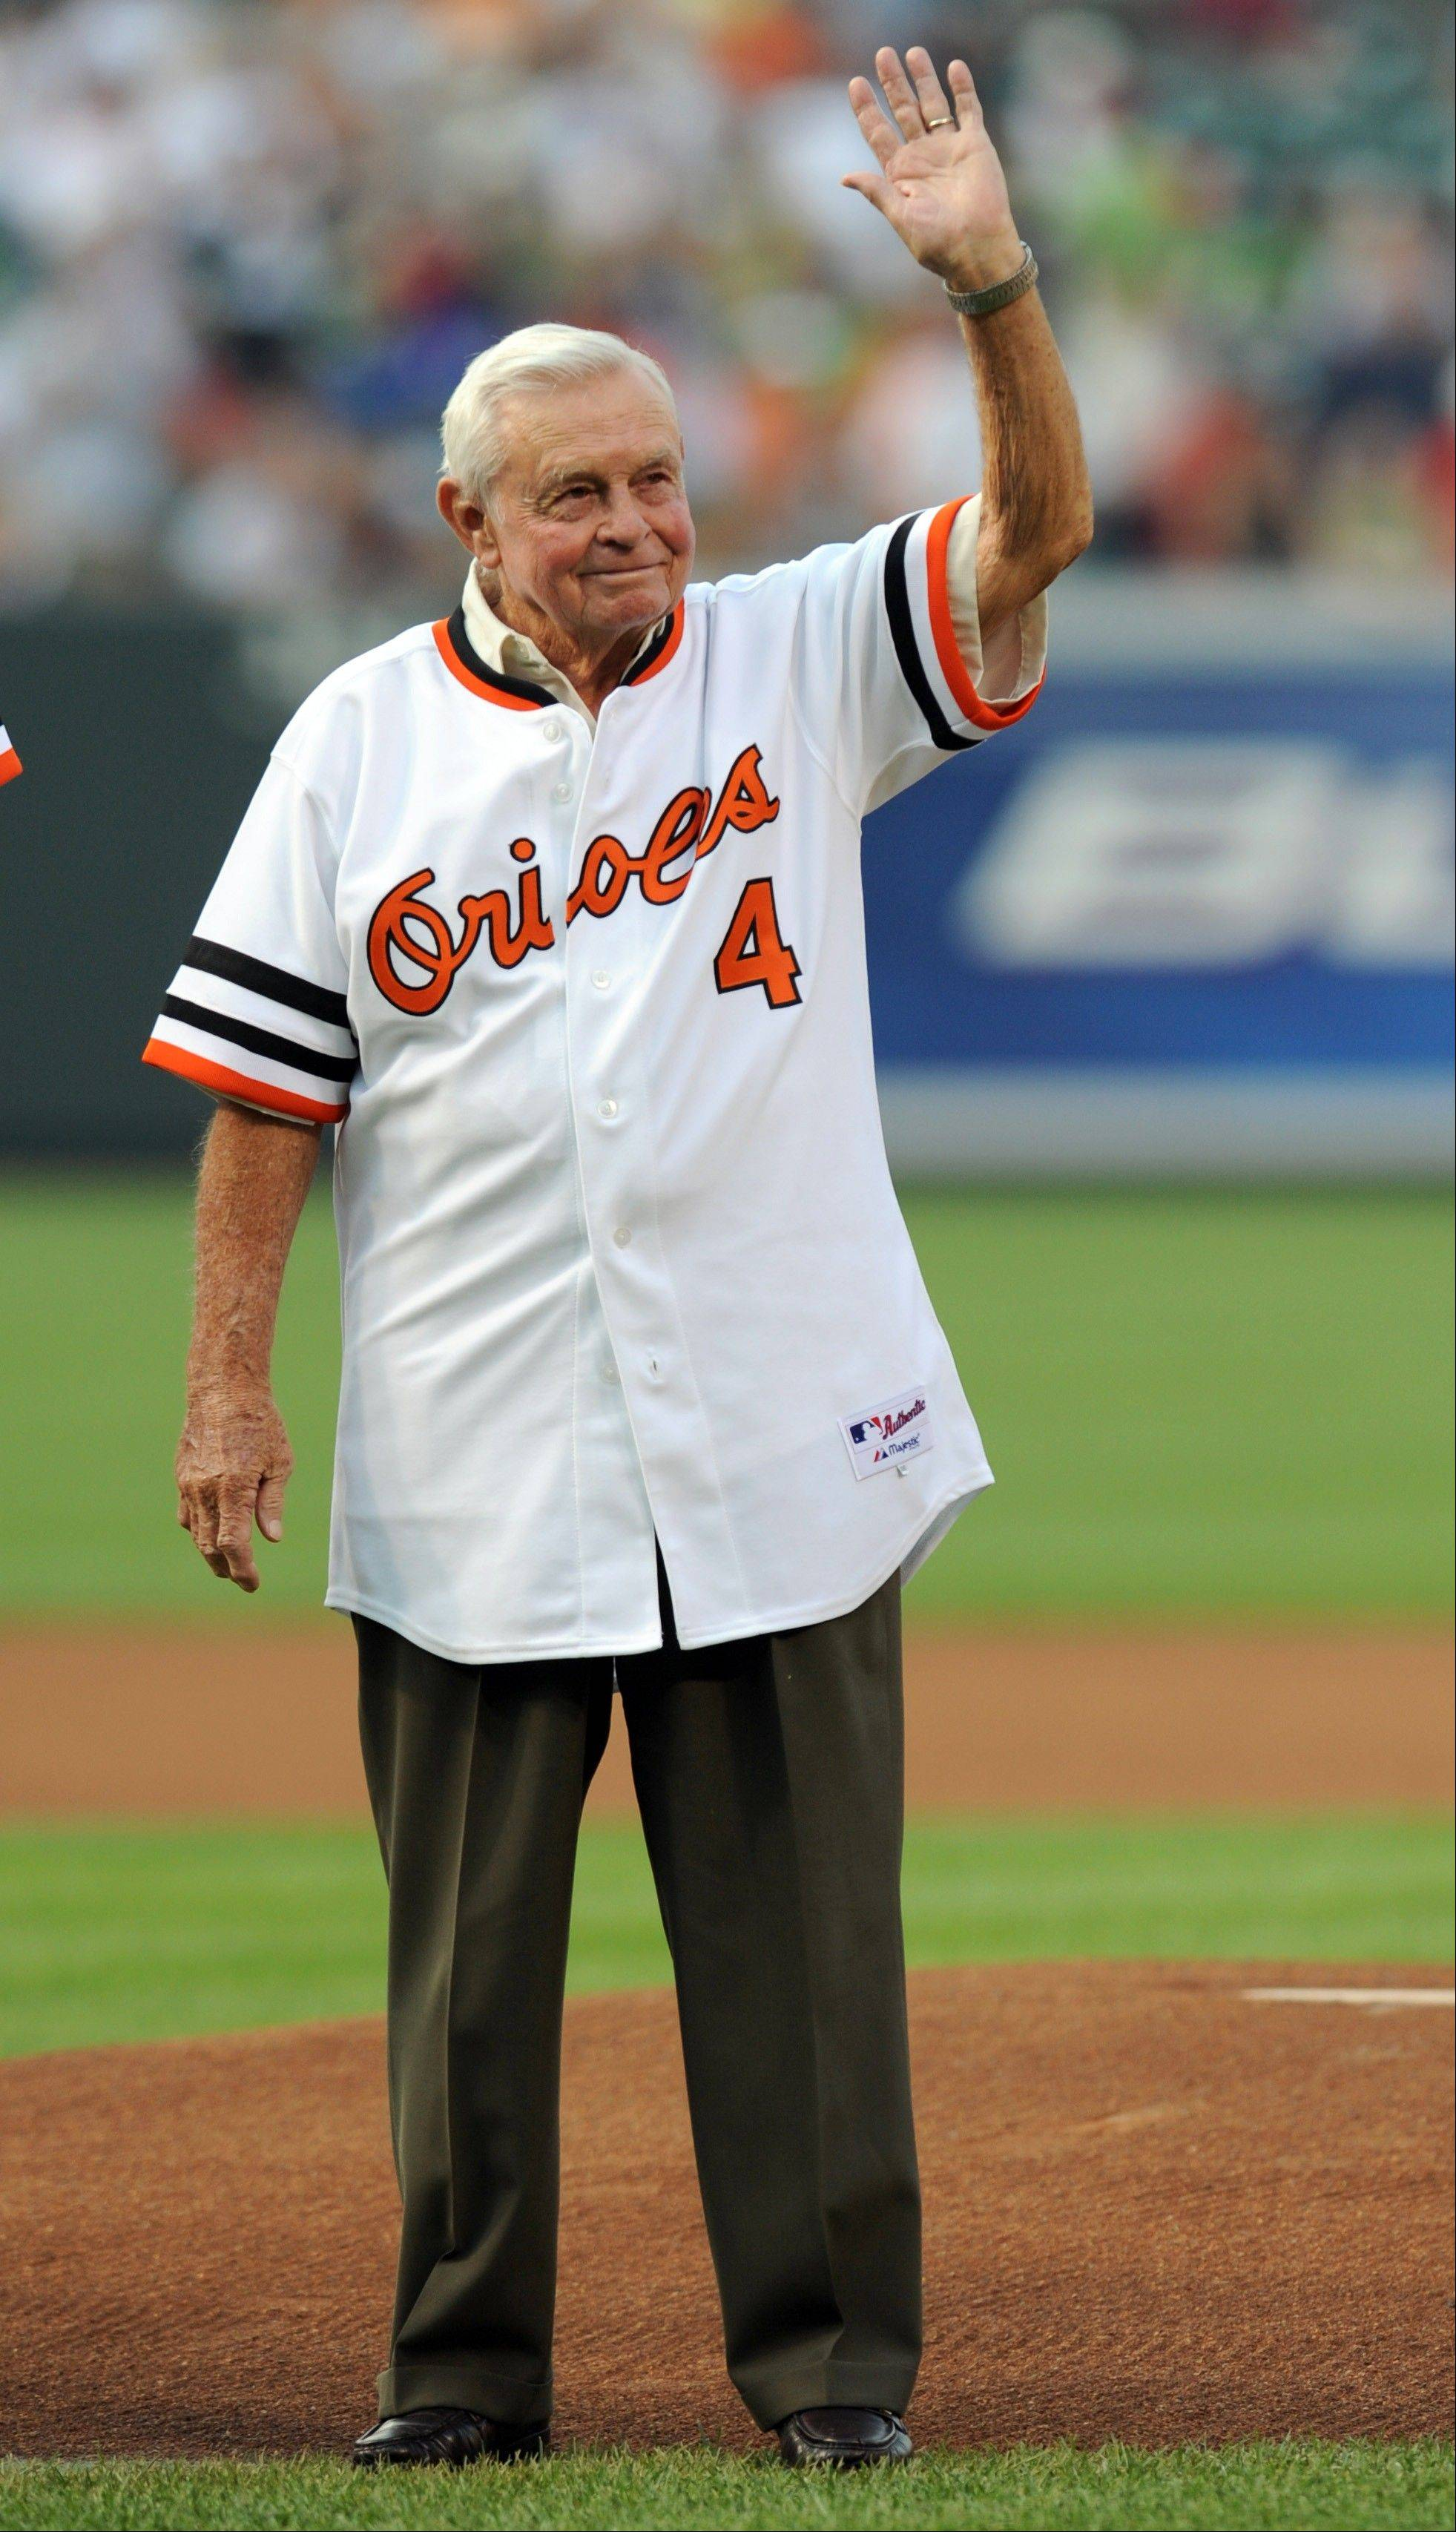 FILE -- In this Friday, June 13, 2008 file photo, former Baltimore Orioles manager Earl Weaver waves to the crowd during a celebration in honor of the 1979 Orioles American League pennant winners before the baseball game between the Baltimore Orioles and Pittsburgh Pirates in Baltimore. Weaver, the fiery Hall of Fame manager who won 1,480 games with the Baltimore Orioles, has died, the team announced Saturday, Jan. 19, 2013. He was 82.